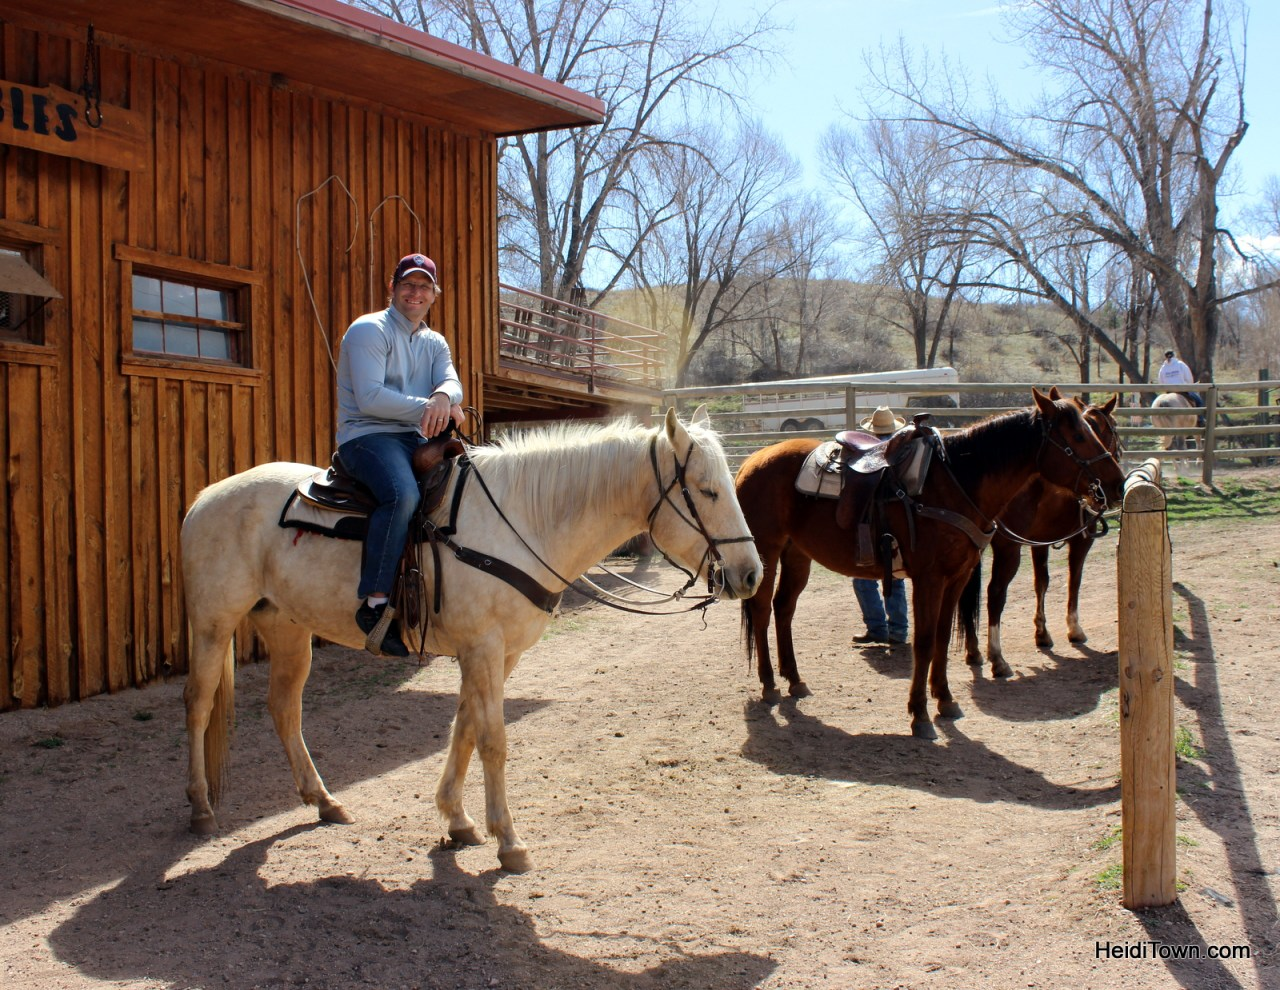 Ryan Schlaefer on Buckaroo at Sylvan Dale Guest Ranch. Playing cowgirl at Sylvan Dale Guest. HeidiTown.com